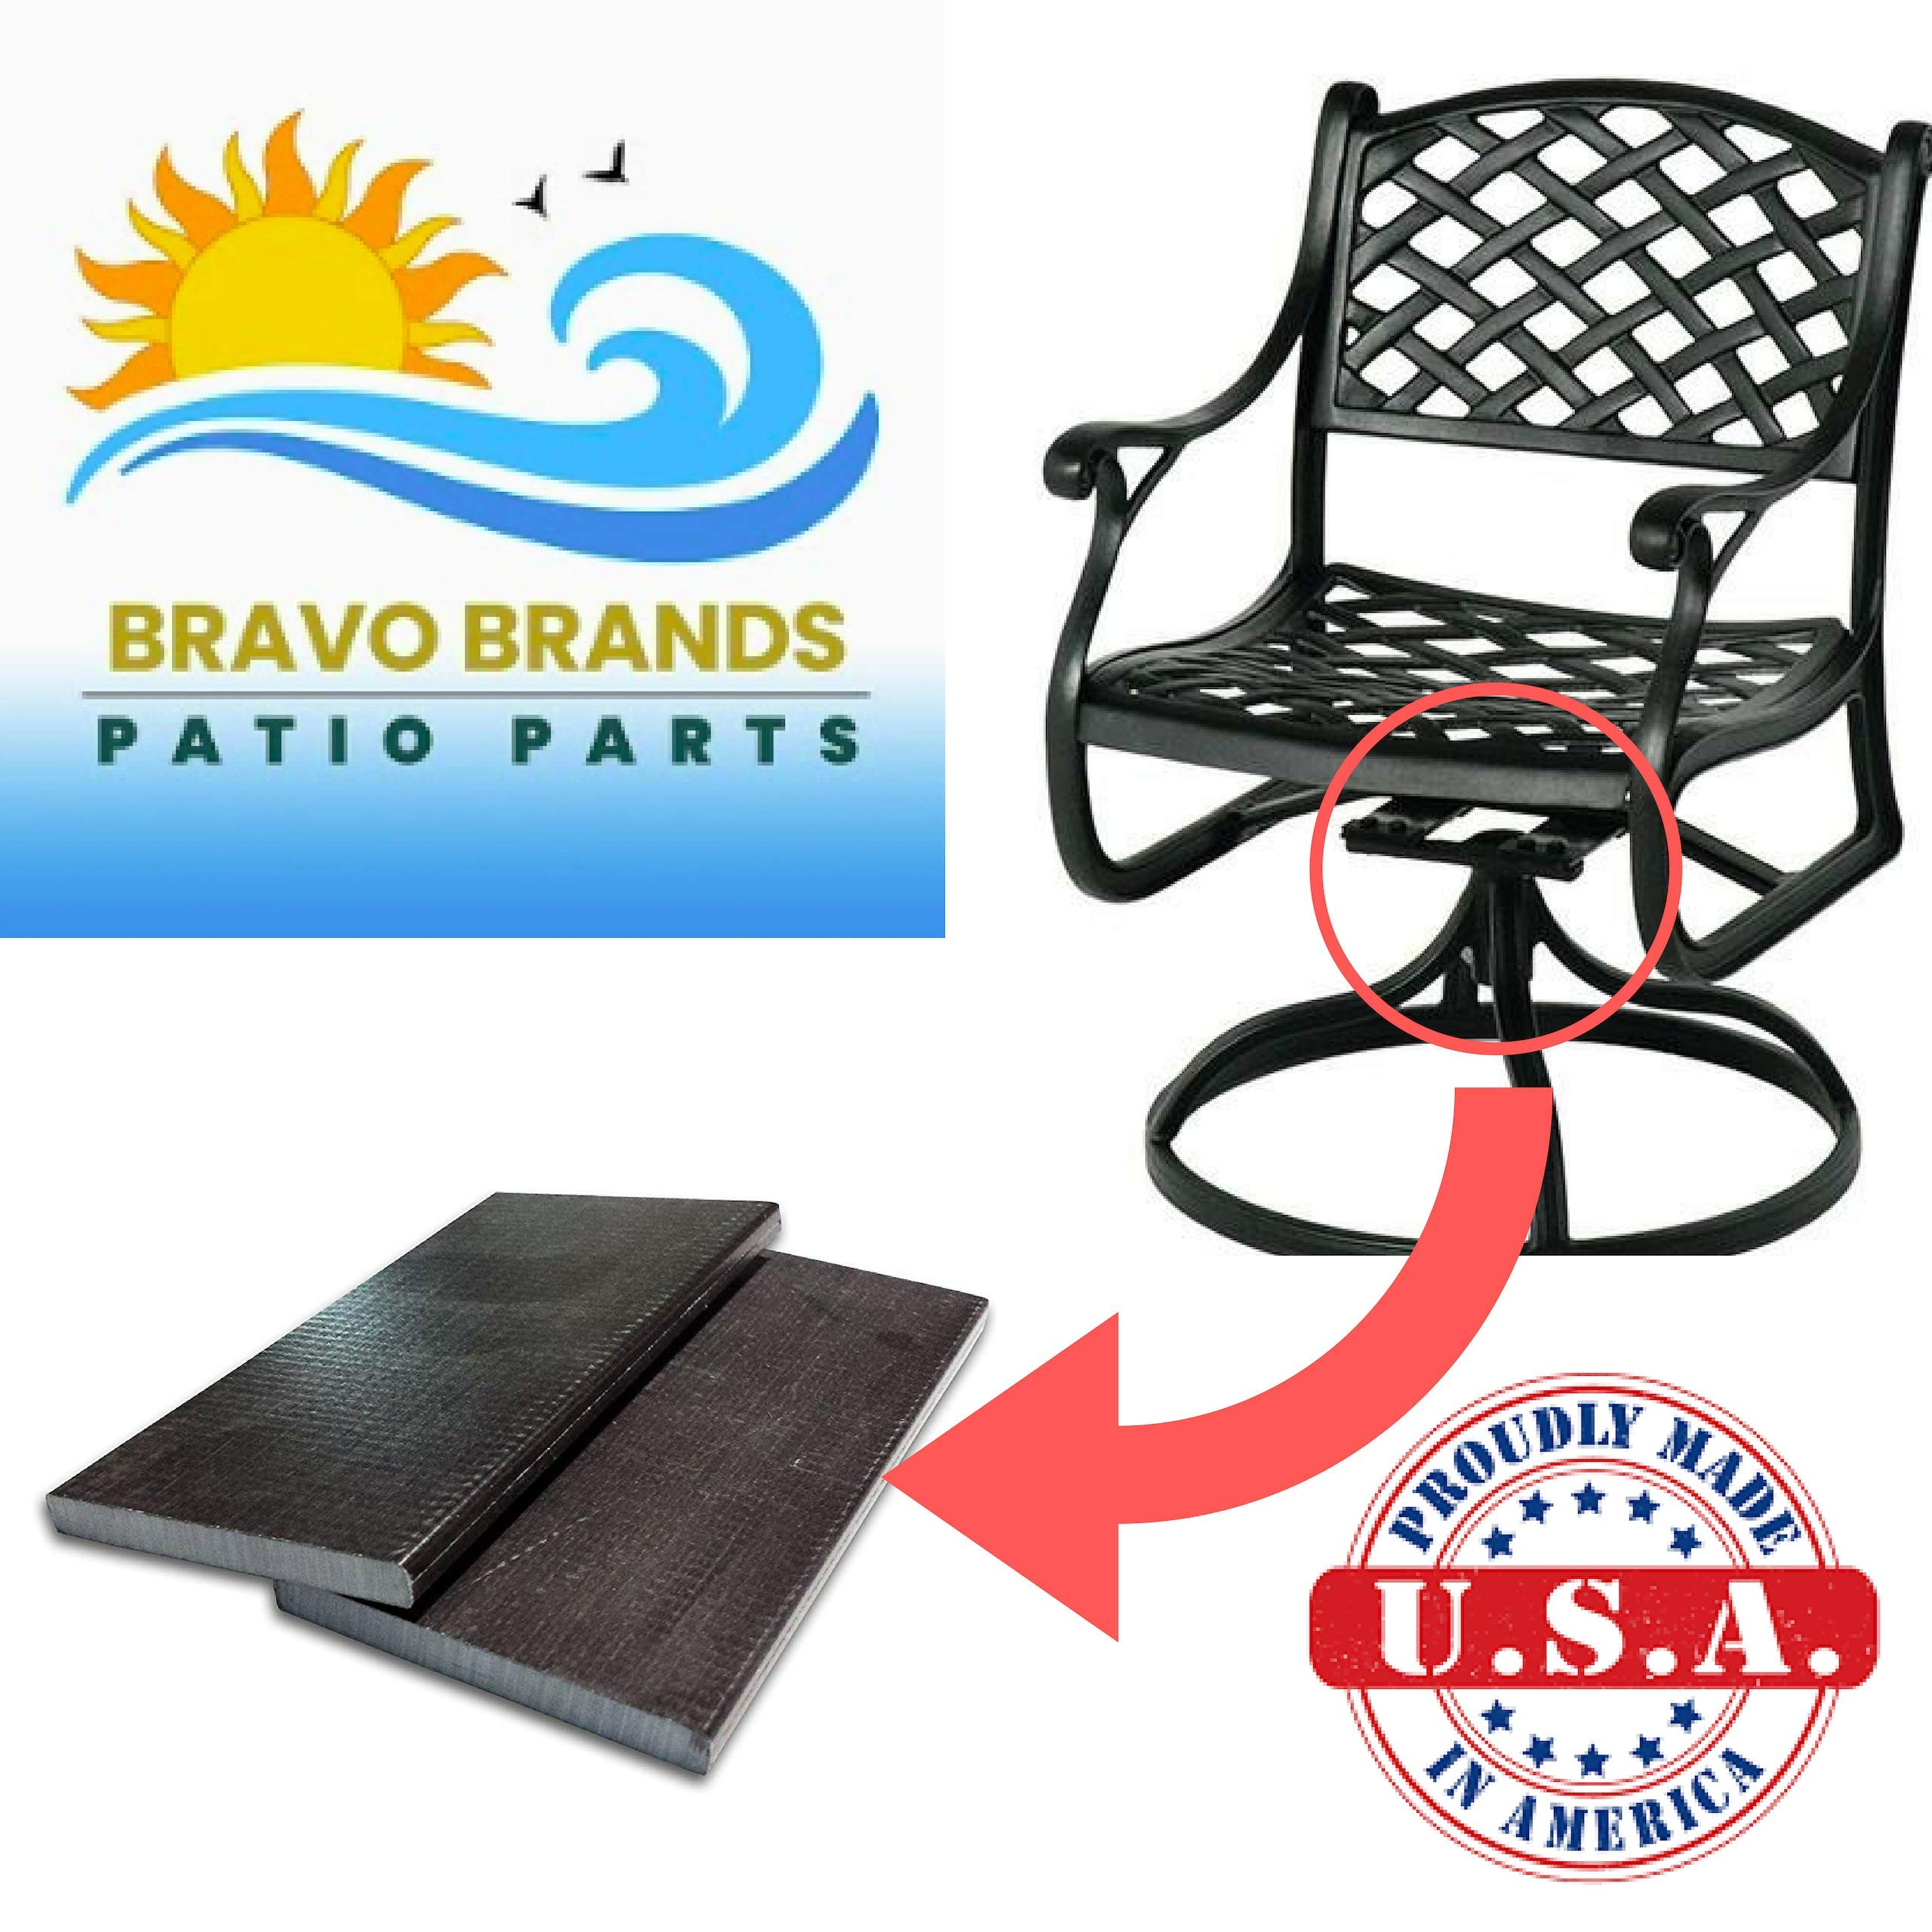 Bravo Brands Fiberglass Spring Plates 3'' x 5'' Rocking Chair Repair Parts for Patio Furniture Swivel Rocker Replacement Kit (Multiple Sizes)